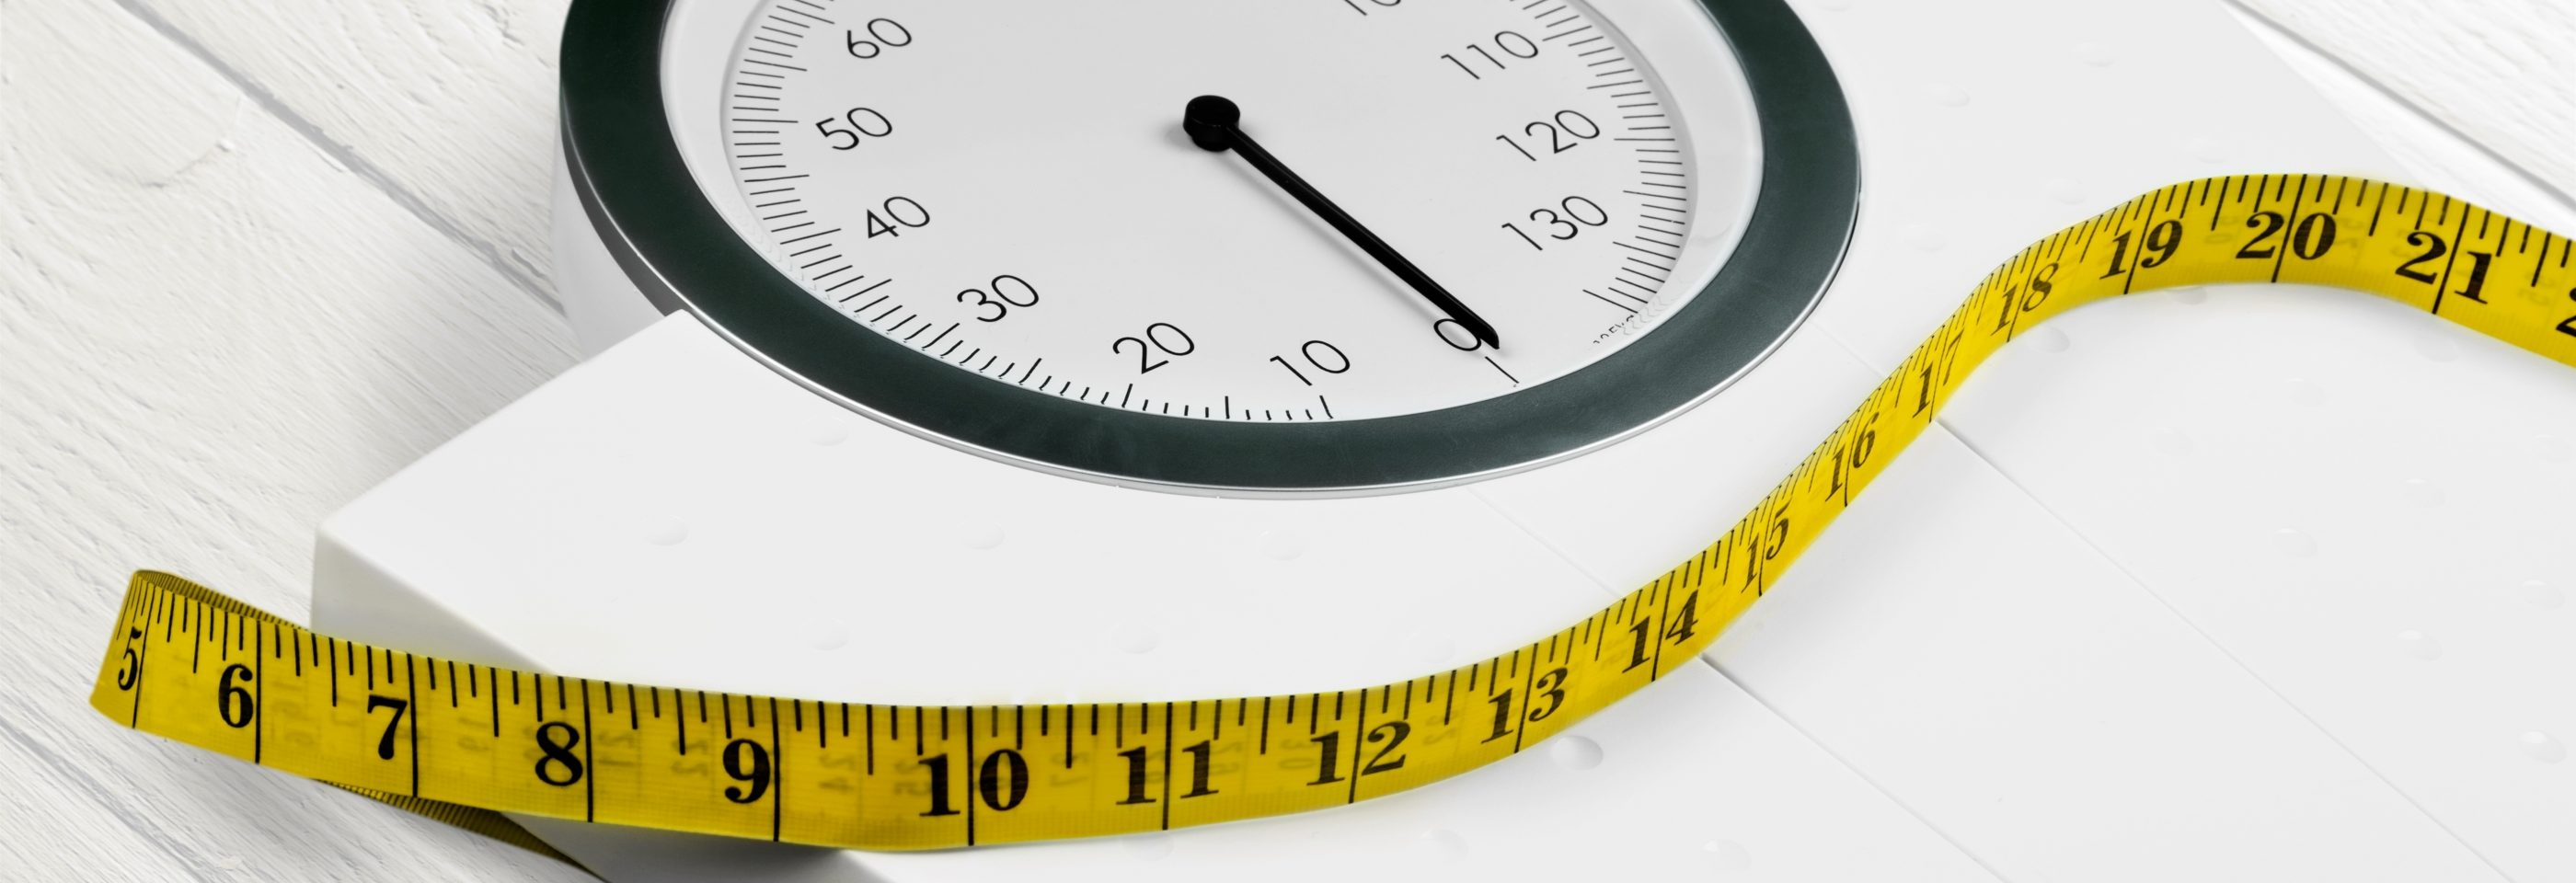 Researchers Develop Tool To Diagnose Weight Loss In Ms Cancer Patients